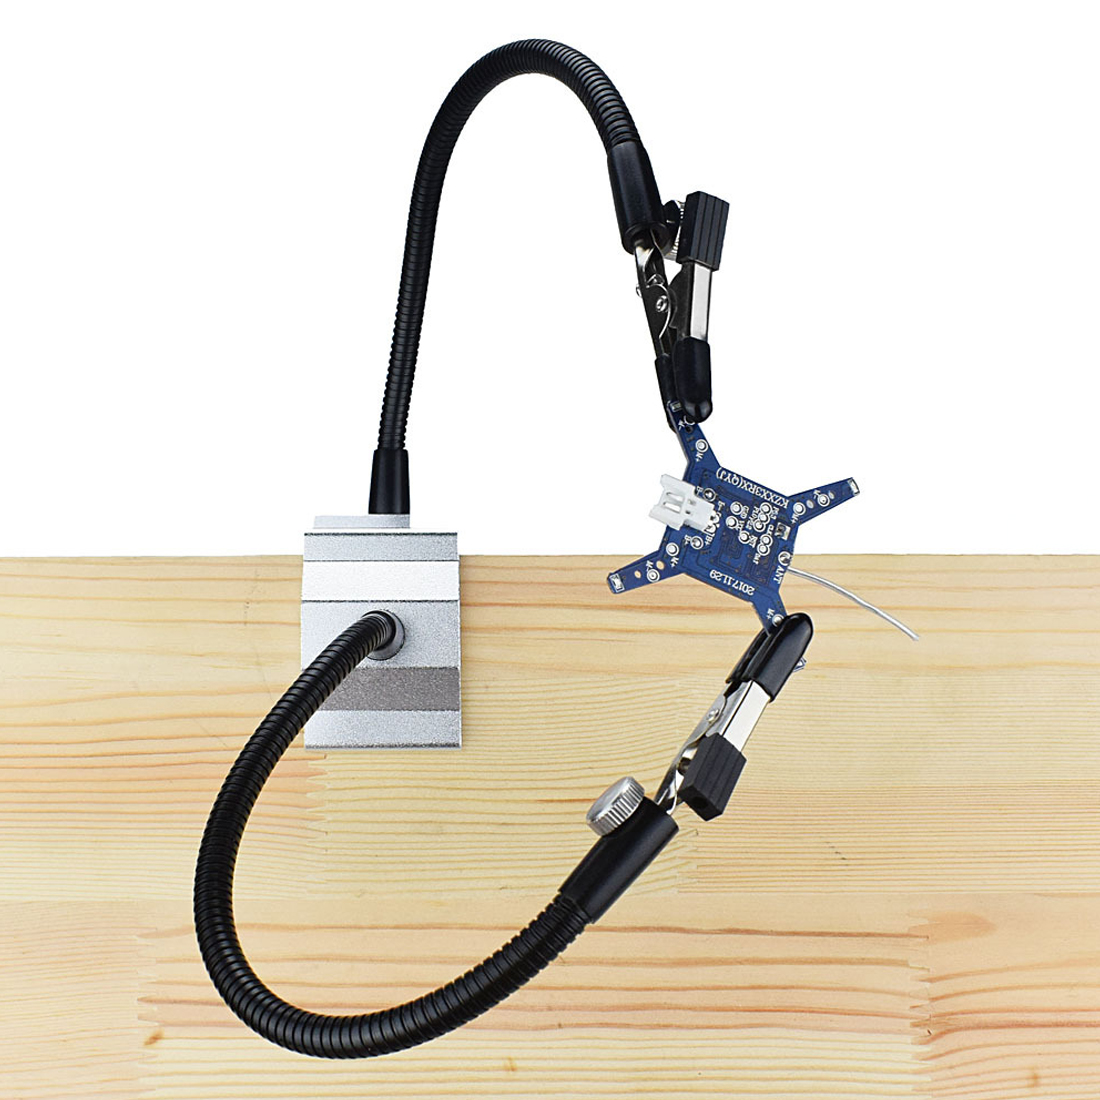 Two-jaw Welding Tool  Soldering Iron Holder Table Clamp Soldering Station ForPCB Board RC Helicopter Repair With 2 Flexible Arms